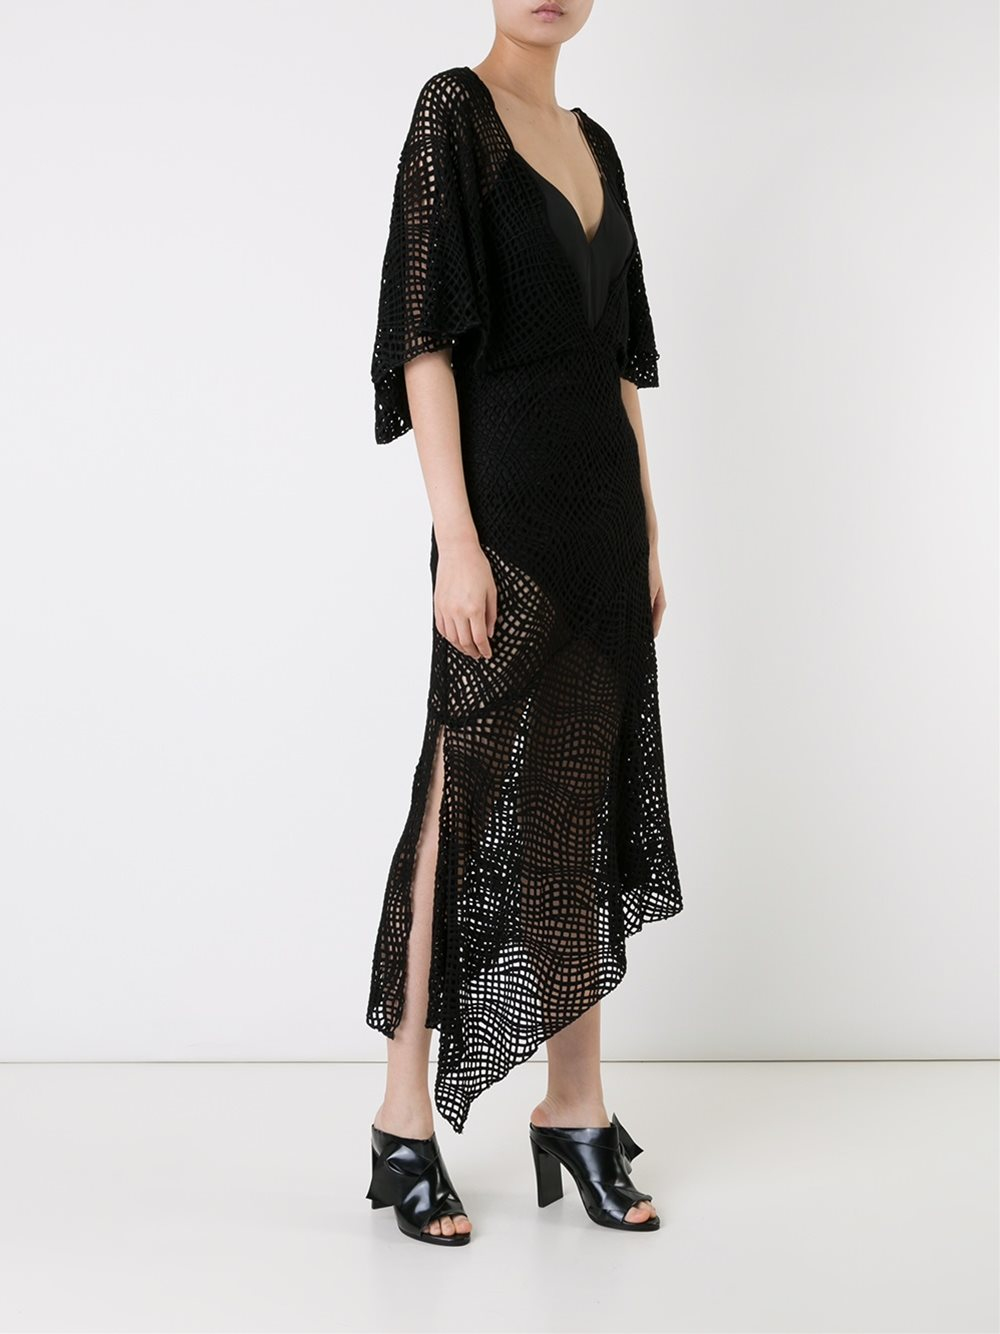 Manning Cartell Raw Intent Dress In Black Lyst